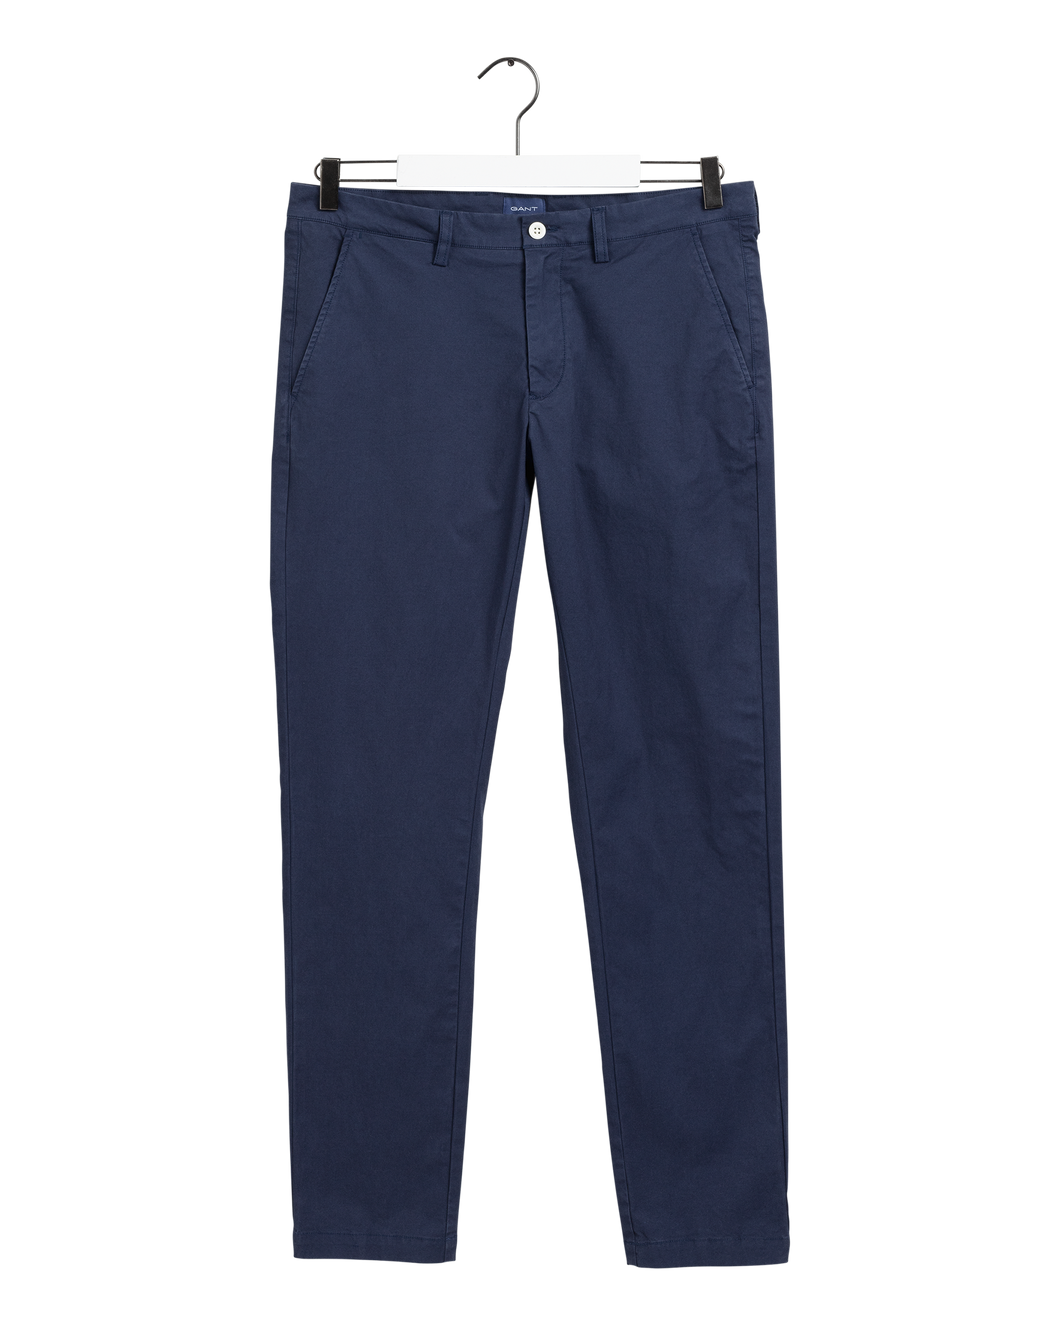 Gant Trousers in regular Classic fit.   The Hallden Sunfaded Chinos    , chosen in a Marine colour